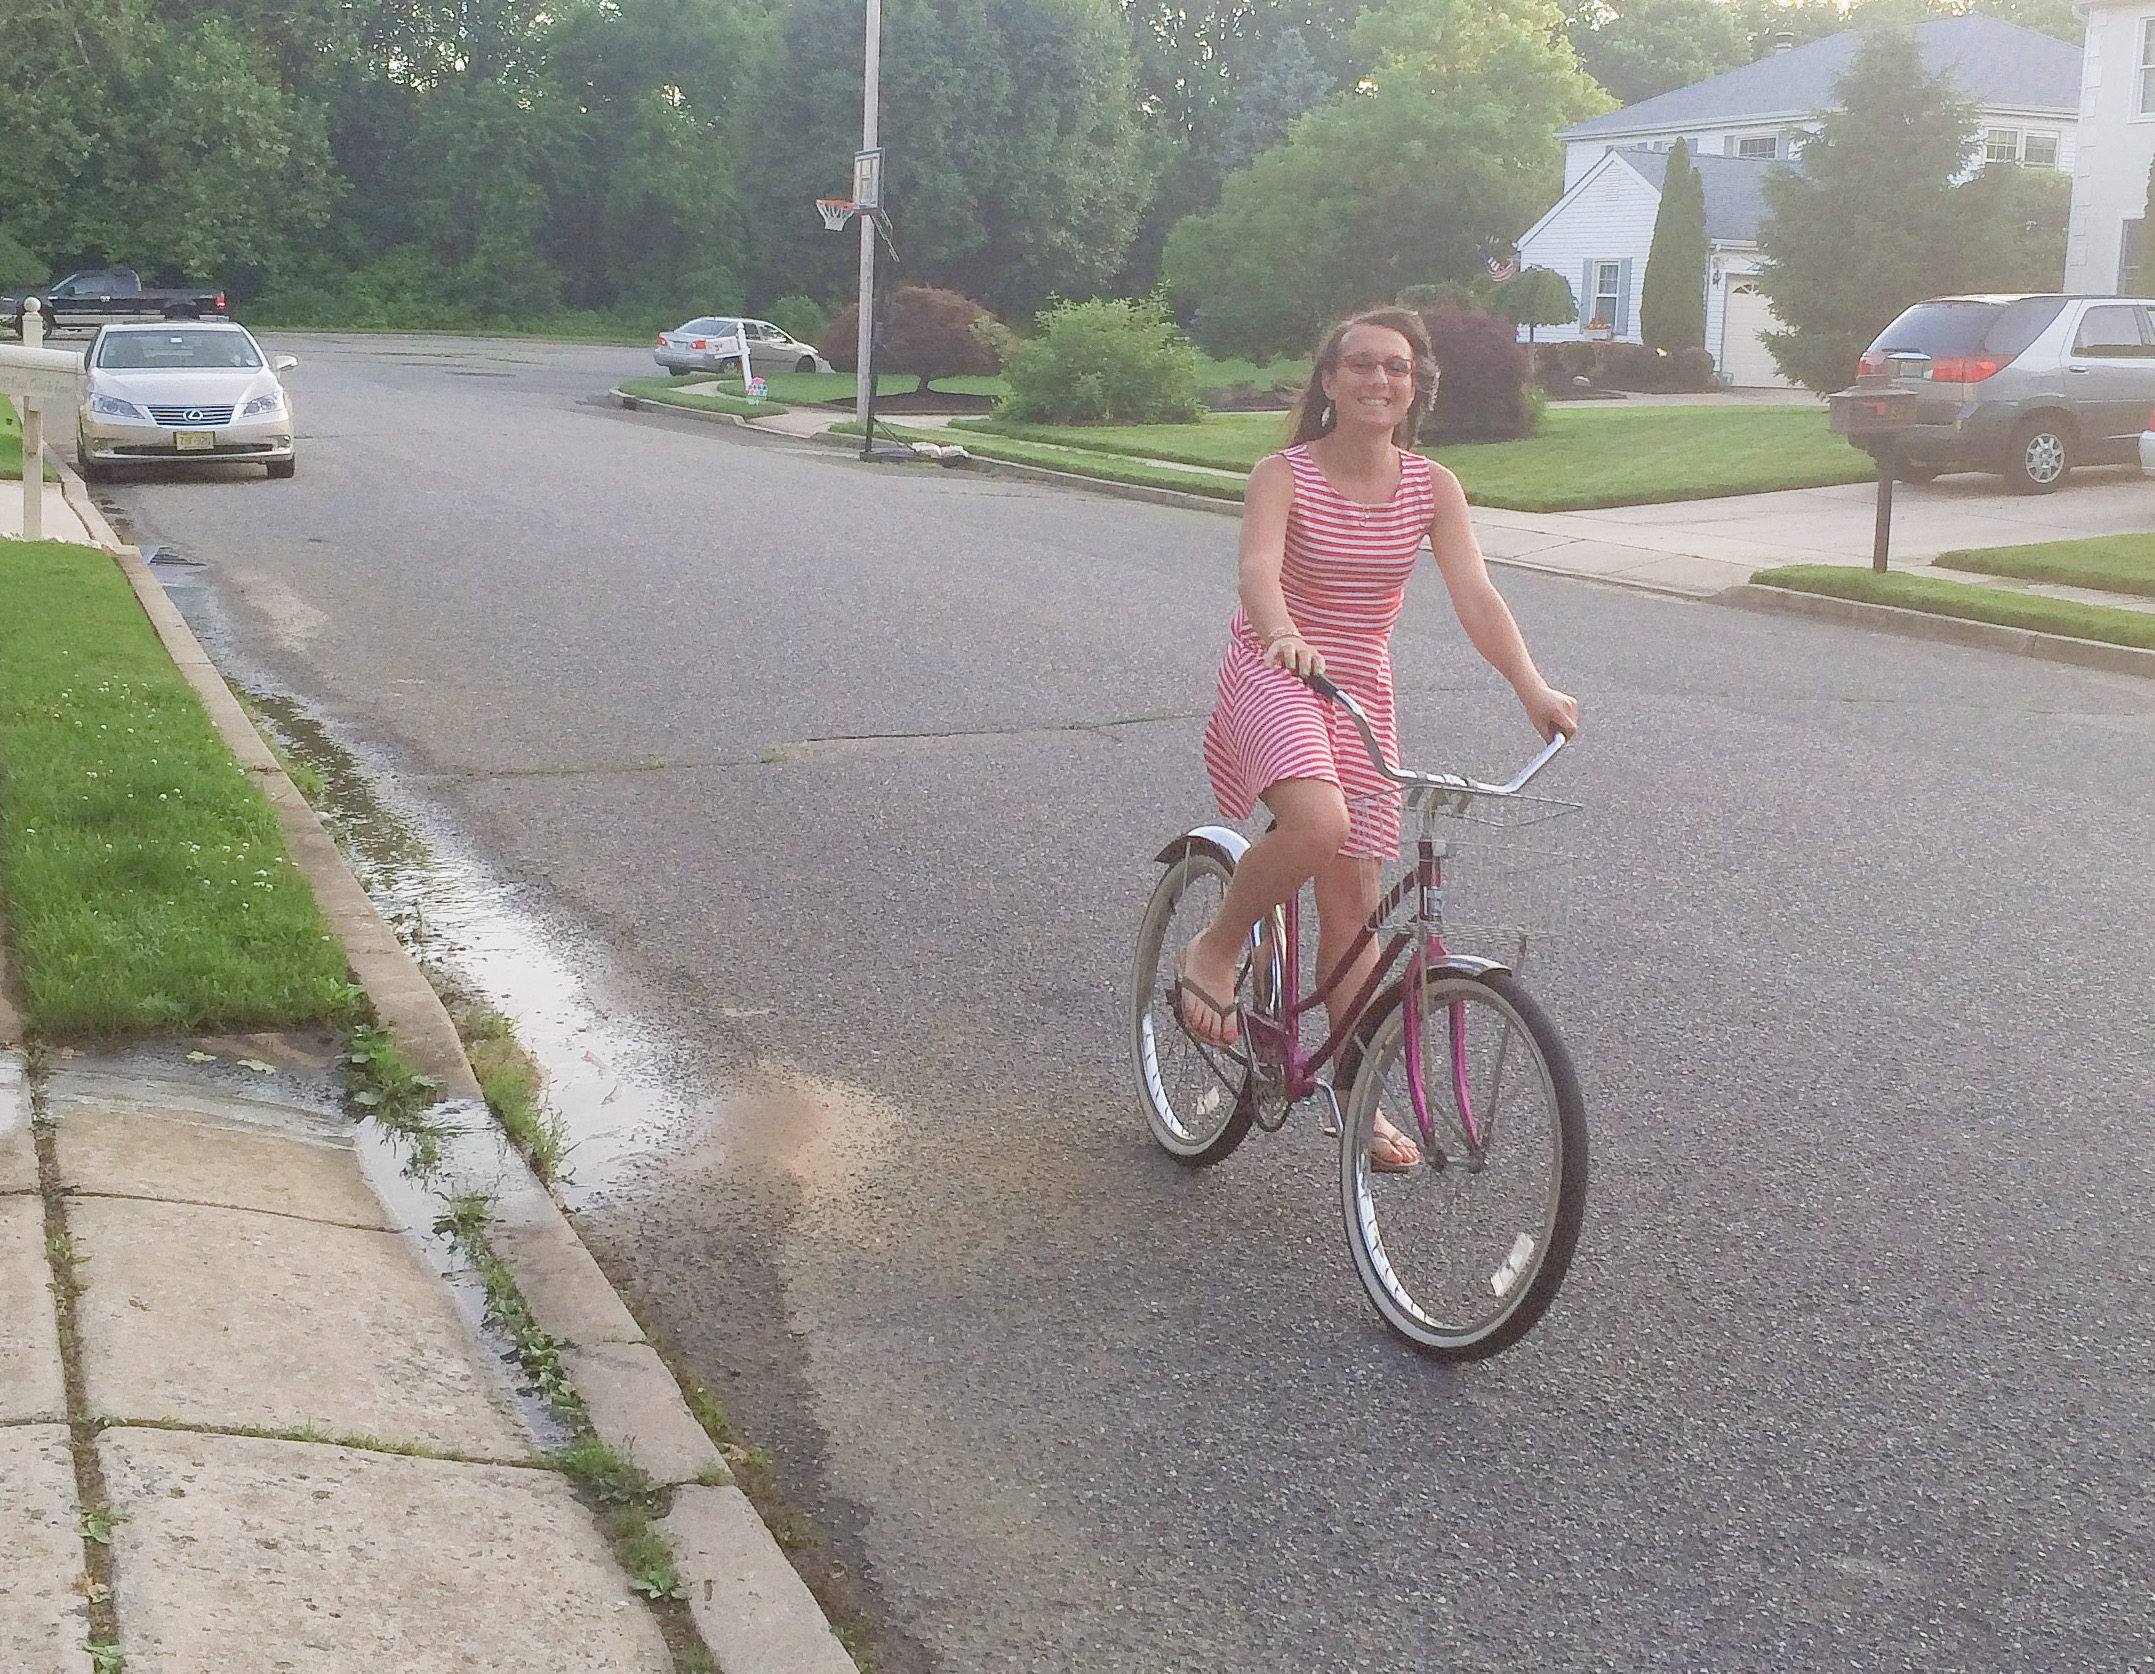 Someone gave my mom a bike and took it for a spin around the block while I was home with them.